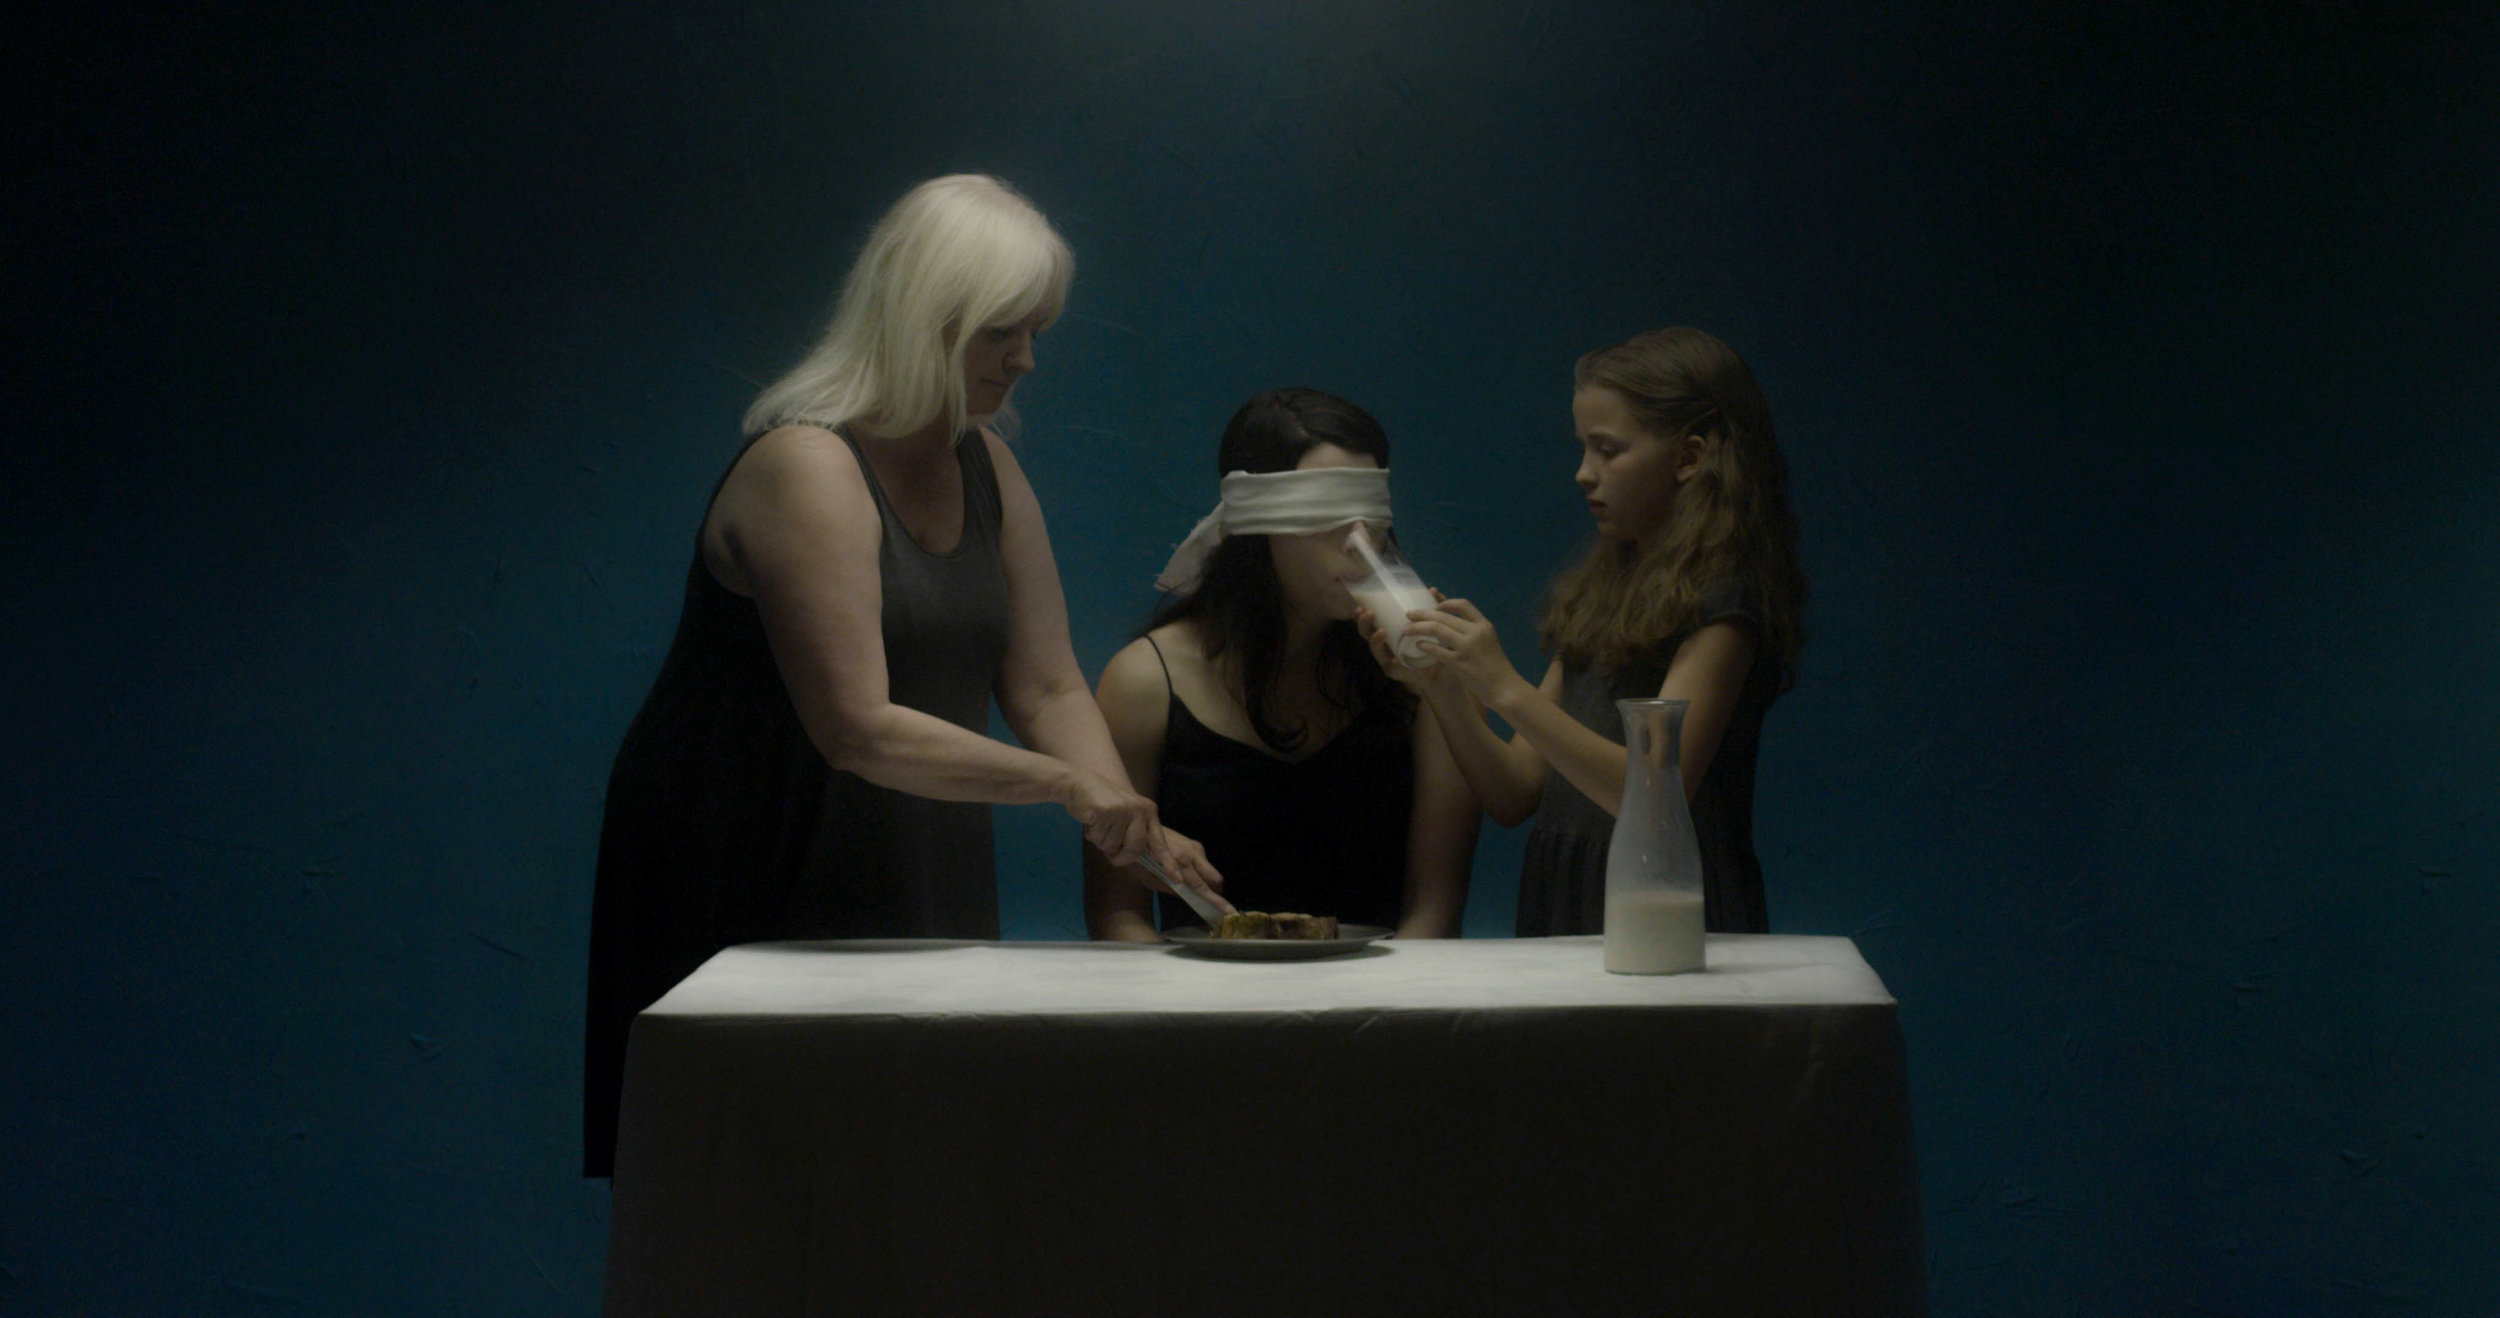 From left, Jan Waldman, Maureen Renee Hughes, and Josette Oberton in QUIETUS, written and directed by Joy Song. (Auspicious Phoenix Productions)